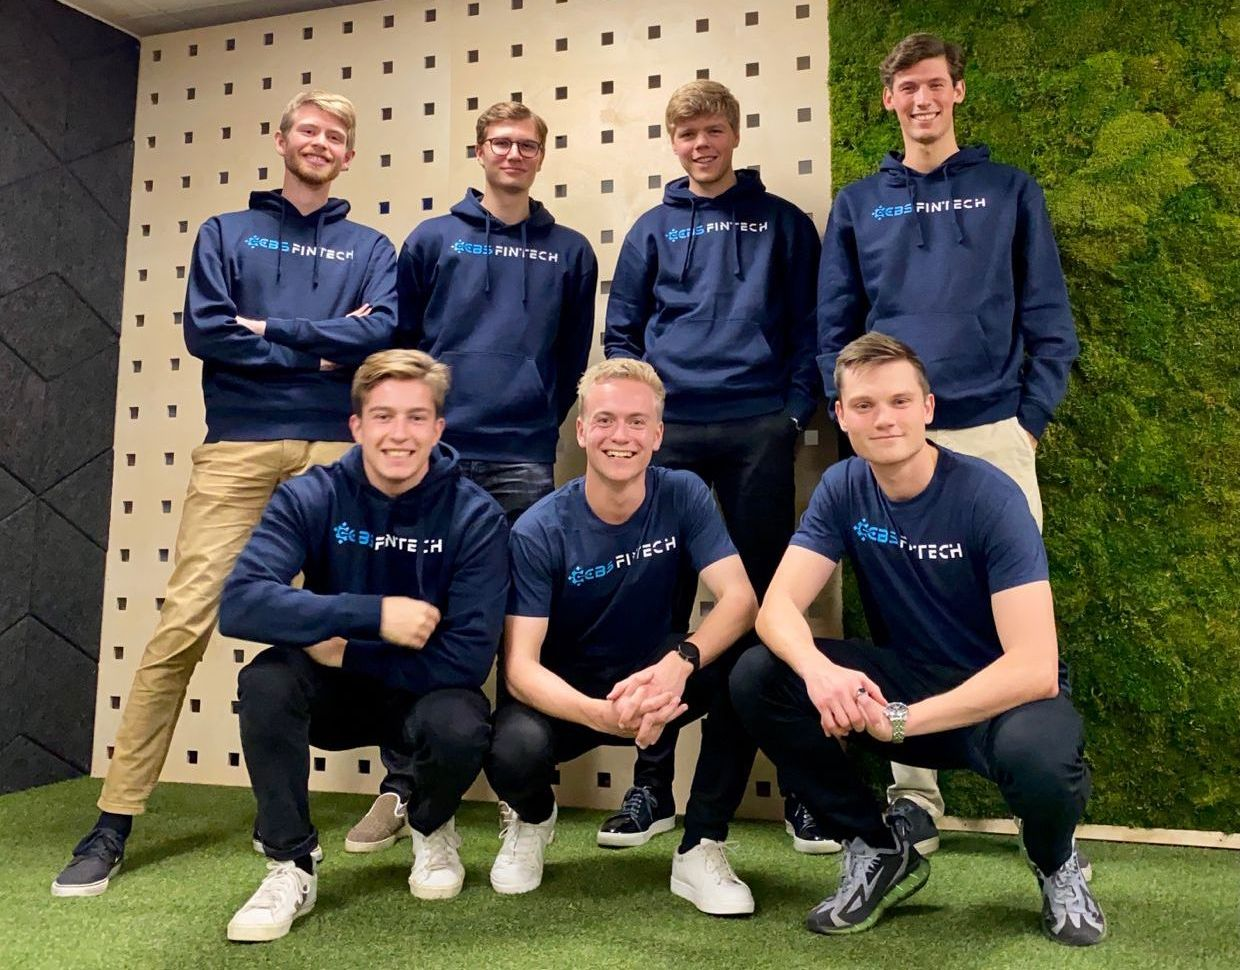 Group of guys in blue sweatshirts